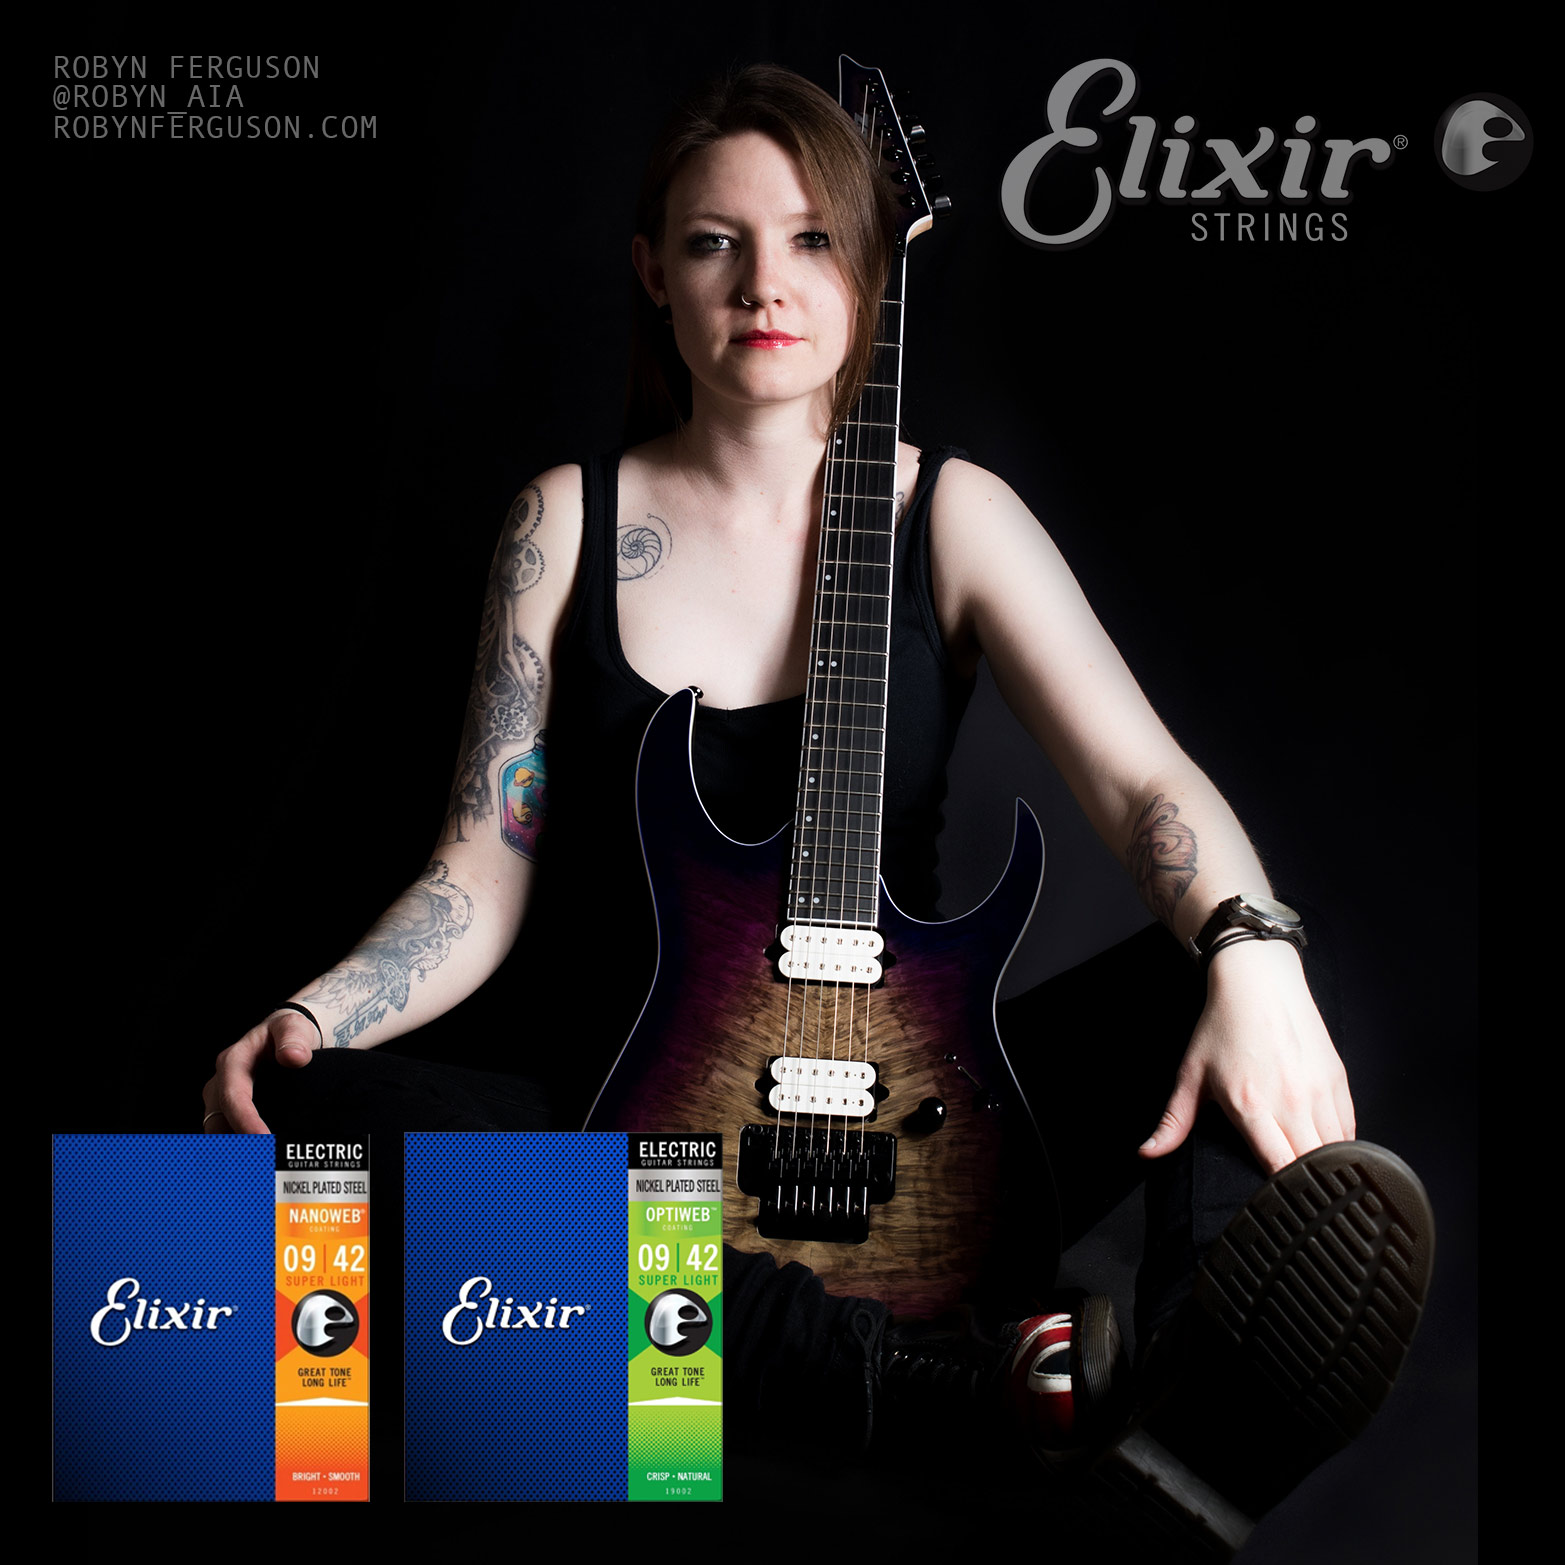 Robyn Ferguson, Guitarist, Vocalist, South Africa, Ibanez guitars, Adorned in Ash, Sistas of Metal, Elixir Strings